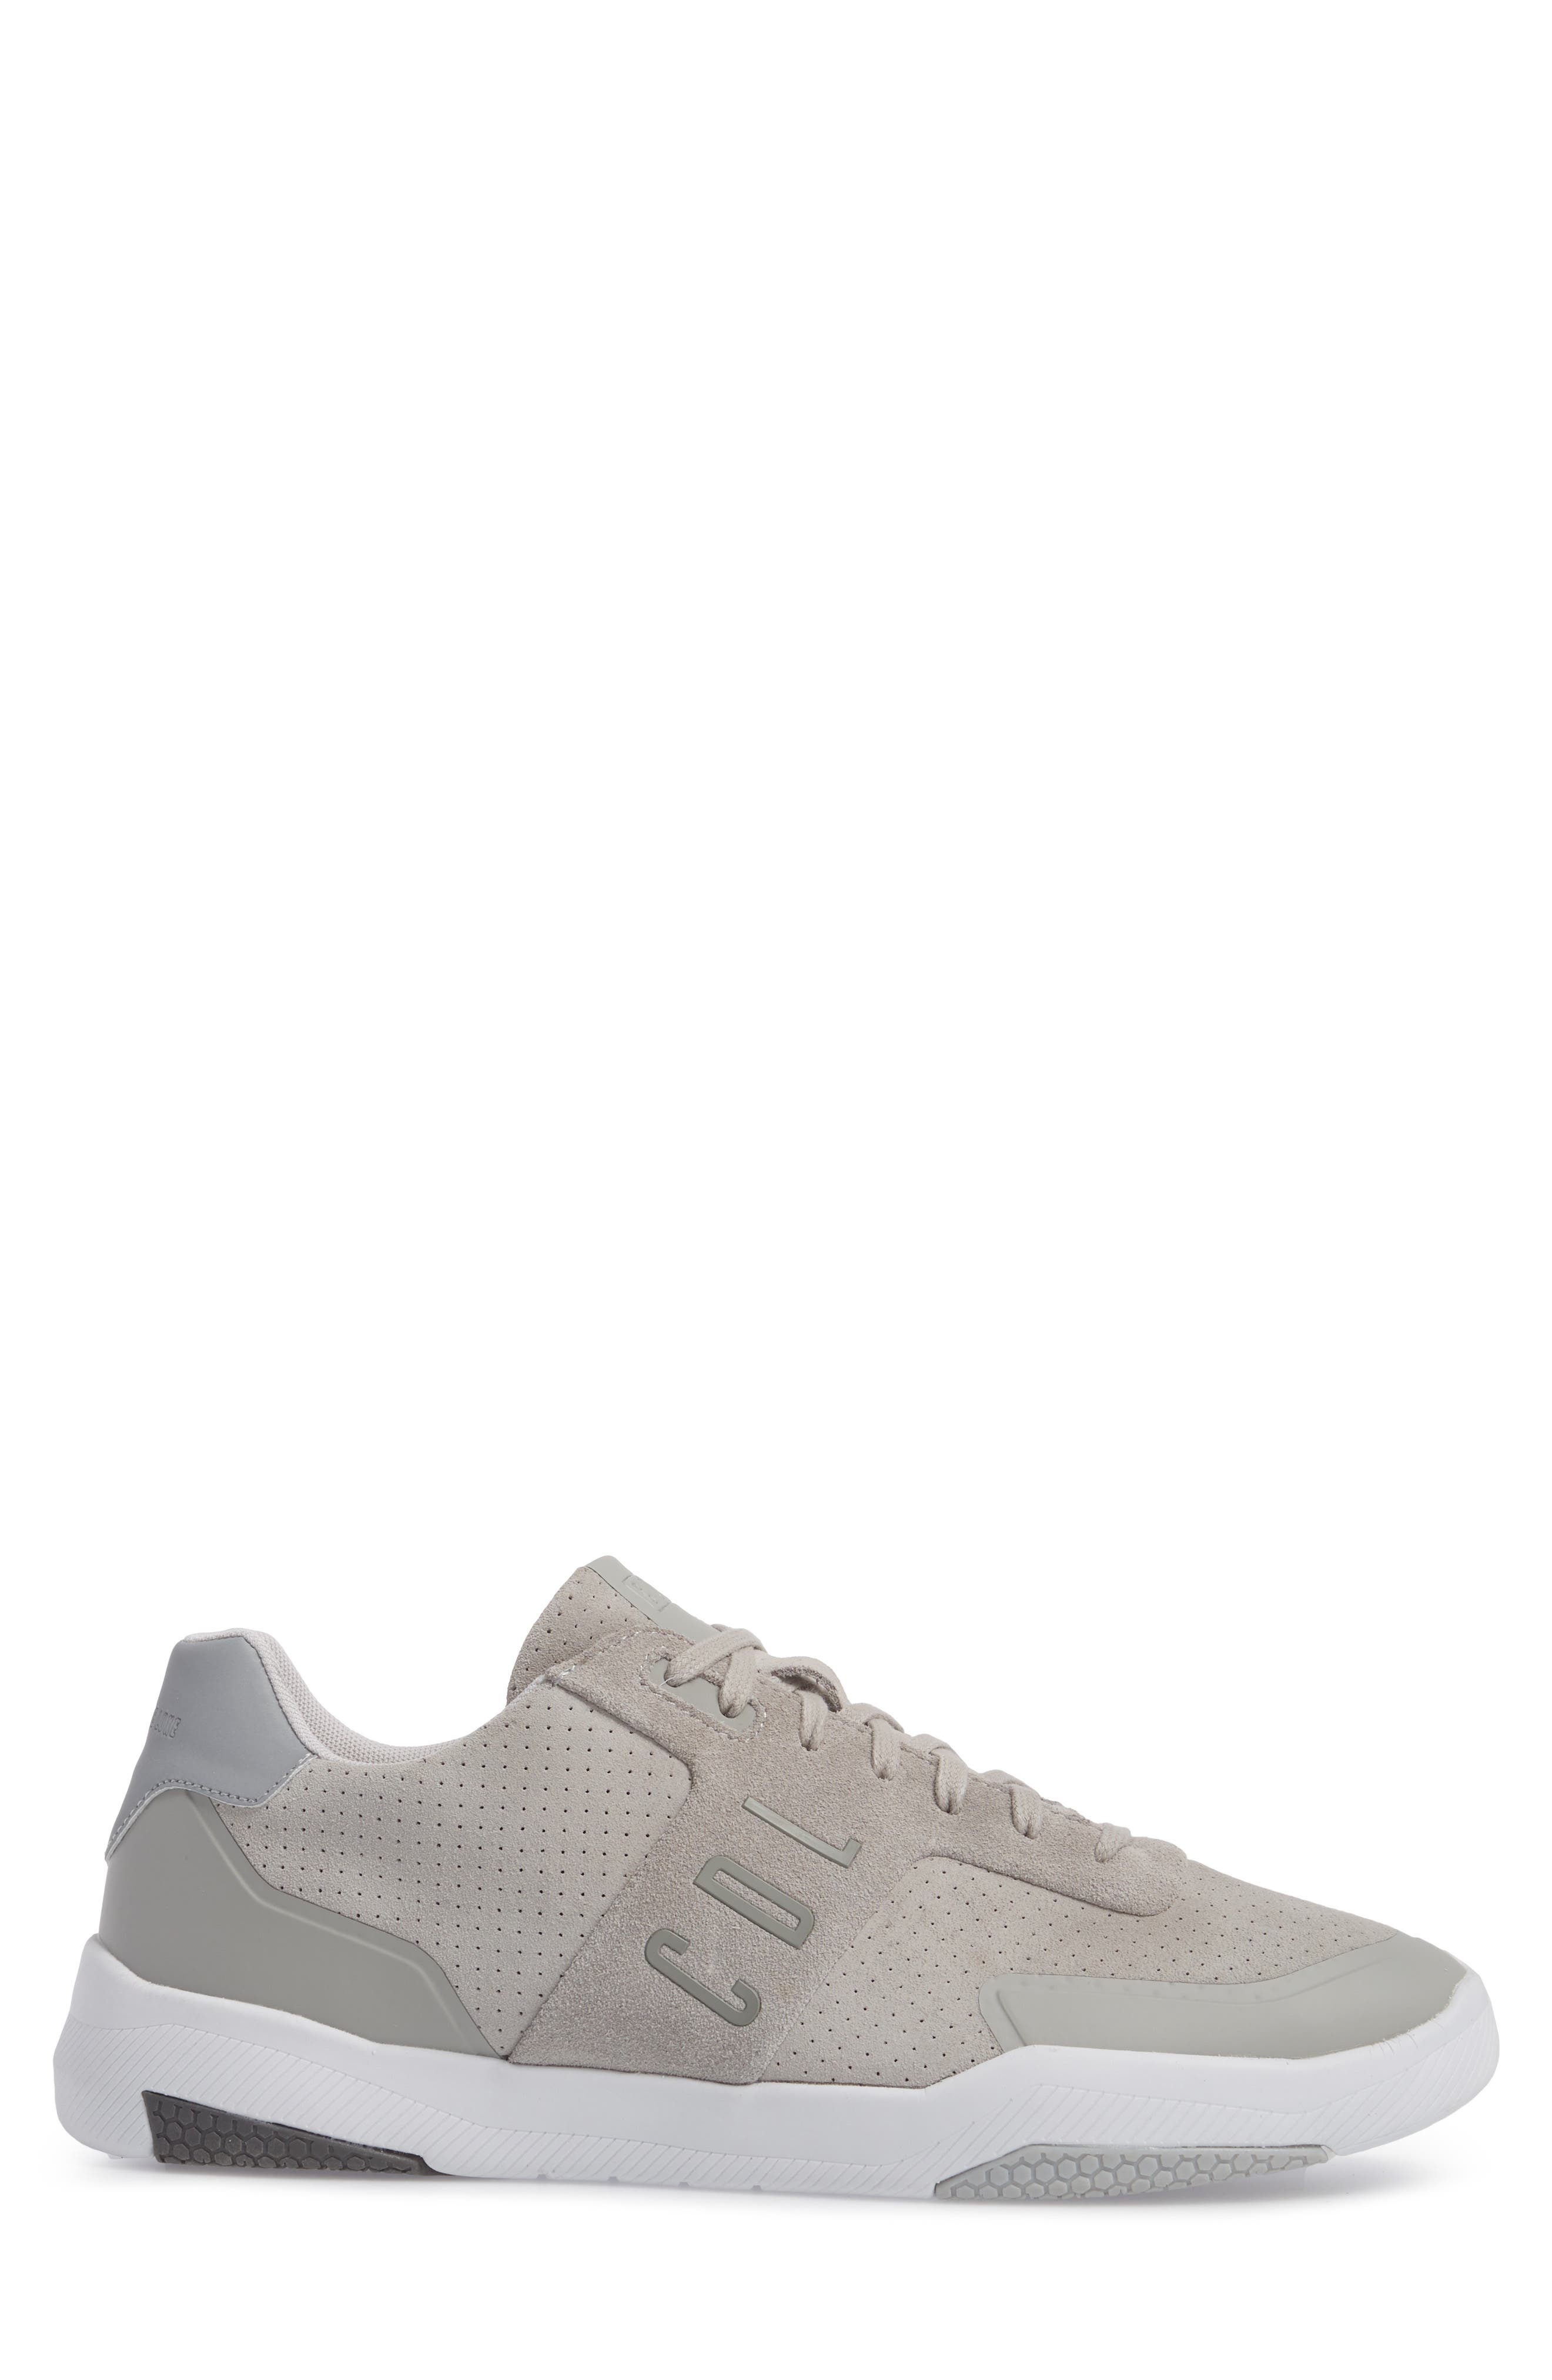 Shima Low Top Sneaker,                             Alternate thumbnail 3, color,                             GREY SUEDE